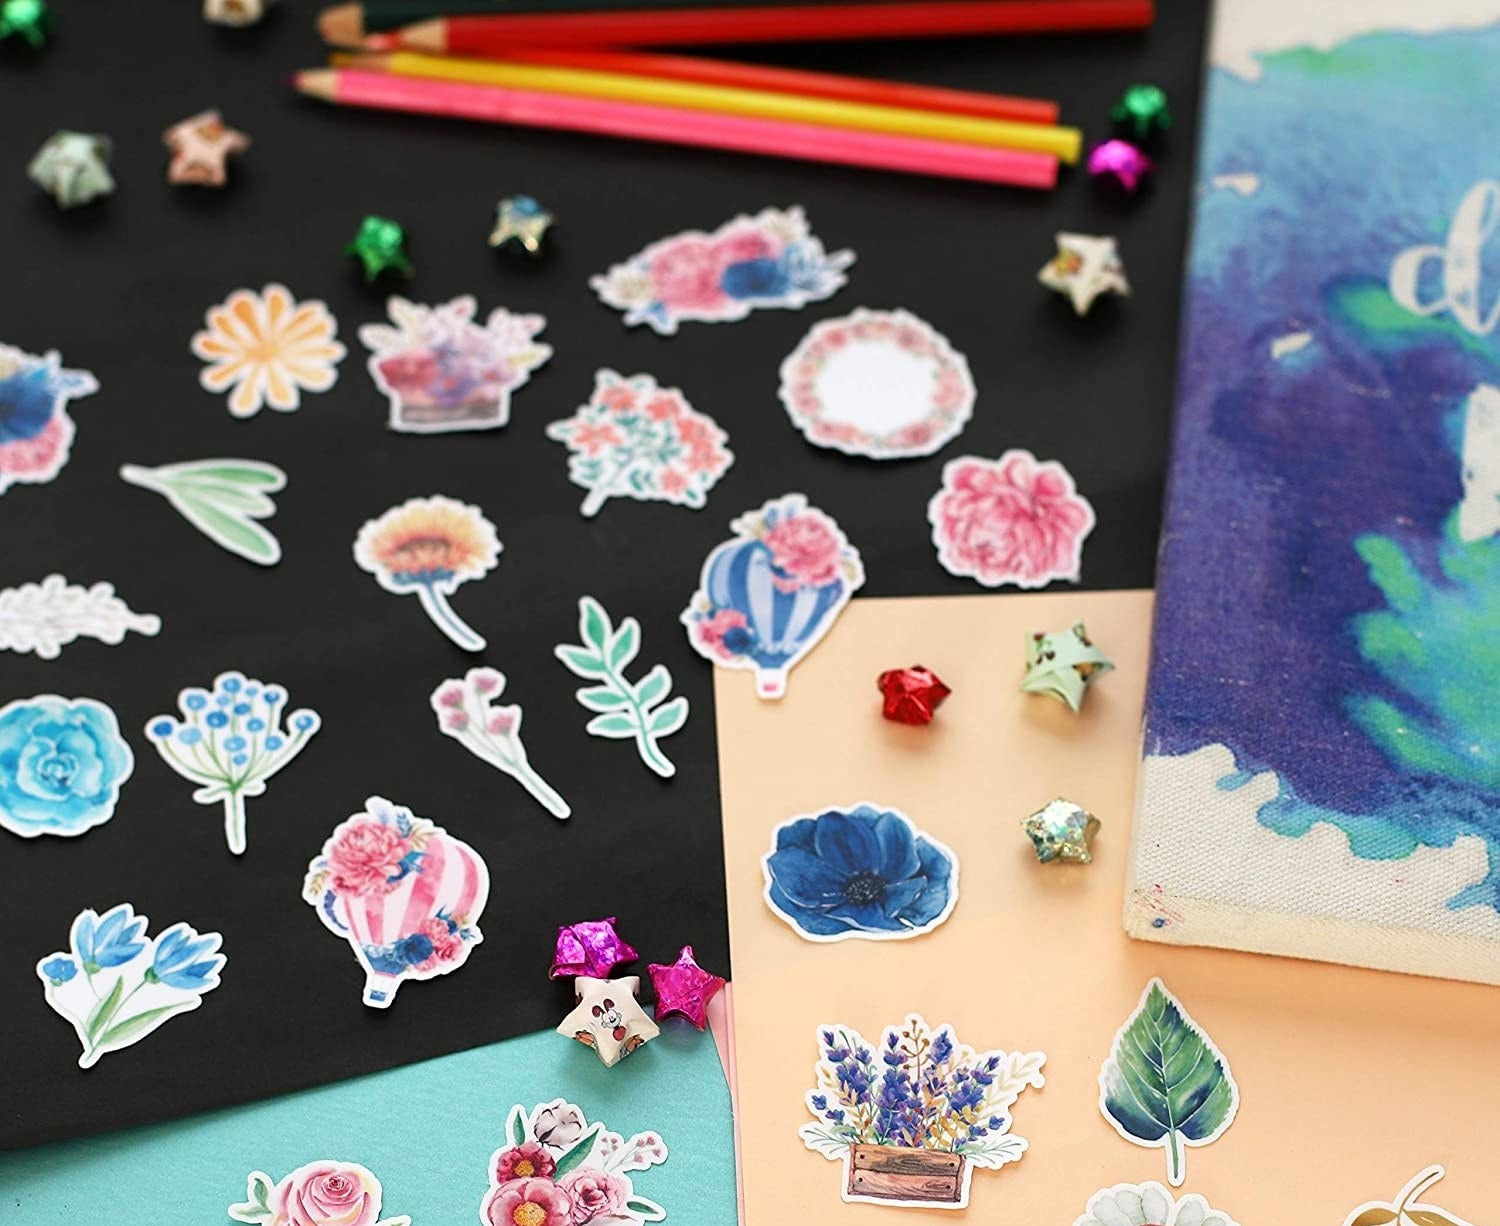 A variety of floral stickers spread on a table